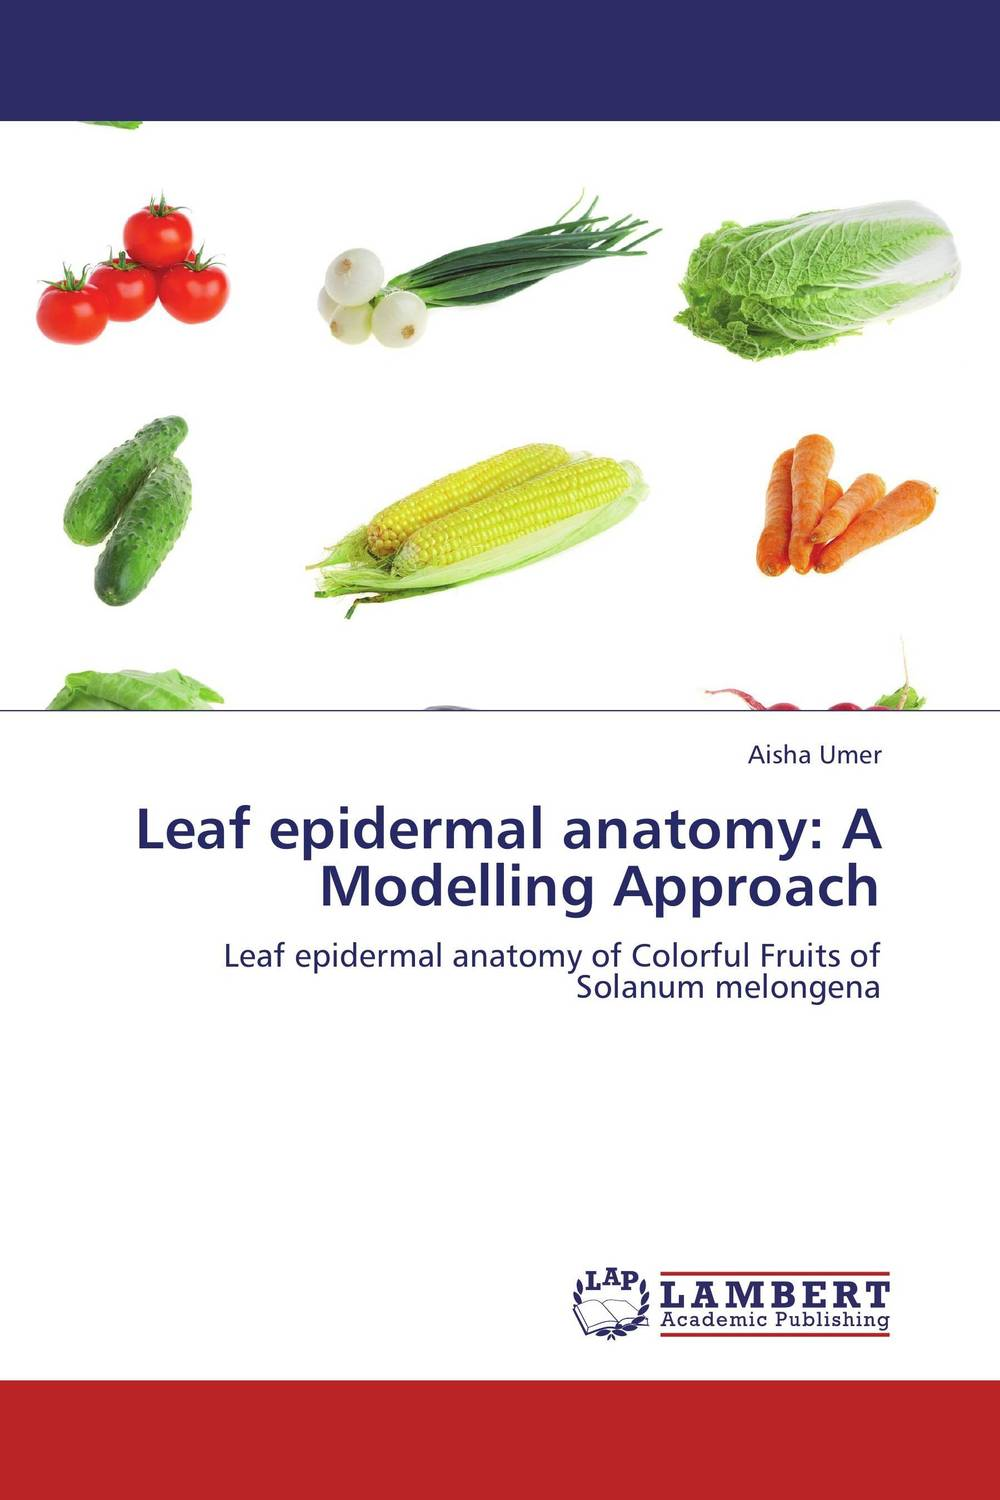 Leaf epidermal anatomy: A Modelling Approach a subspace approach for speech signal modelling and classification